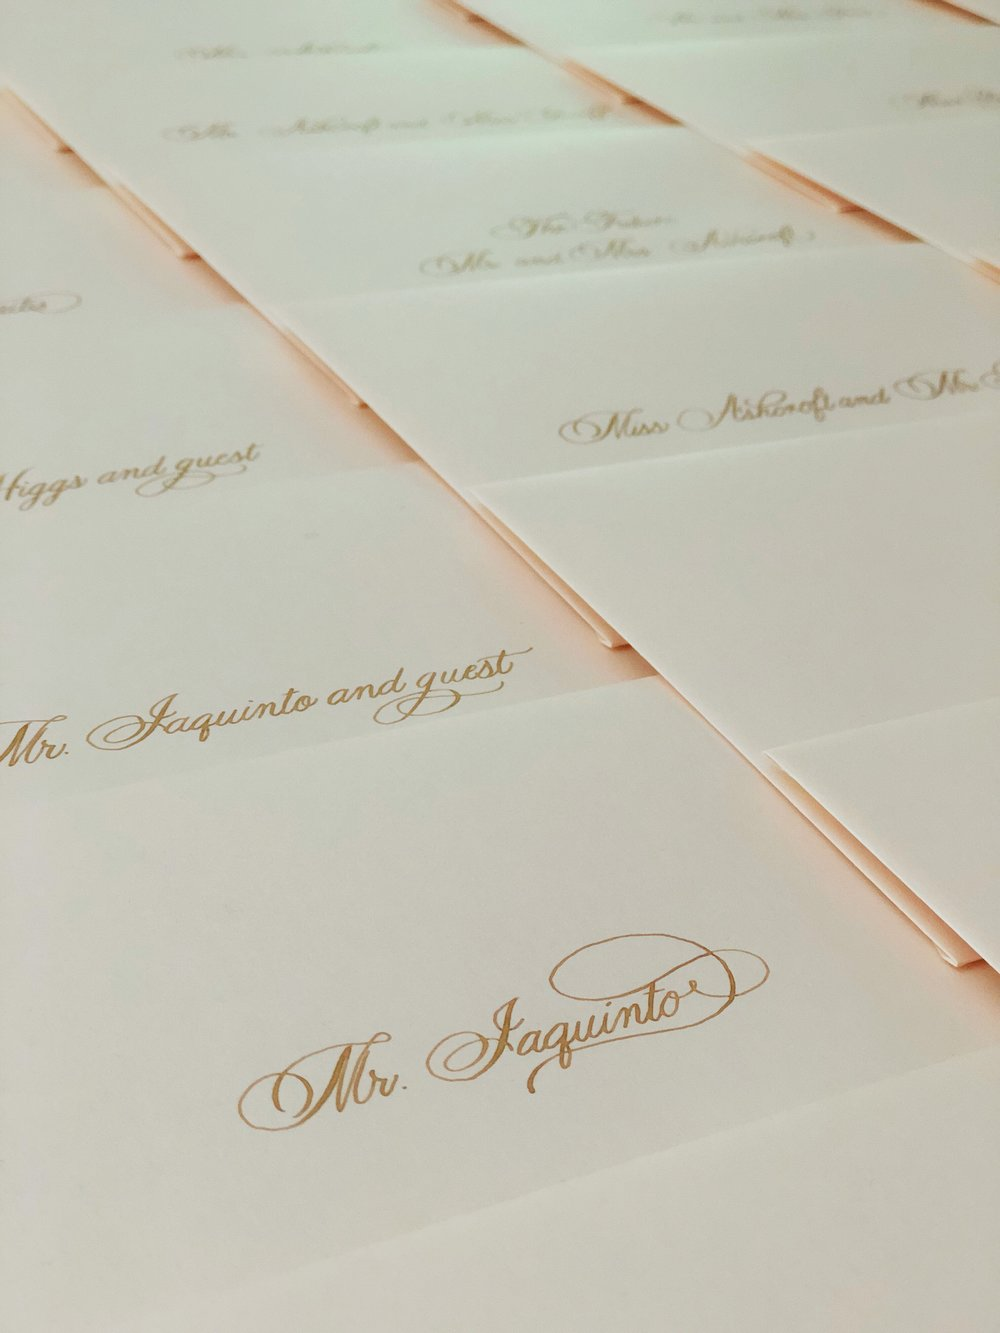 Central PA, York PA, JesSmith Designs, custom, wedding, invitations, bridal, Harrisburg, hanover, calligraphy, baltimore, wedding invitations, lancaster, gettysburg, 06-19 16.59.09.jpg